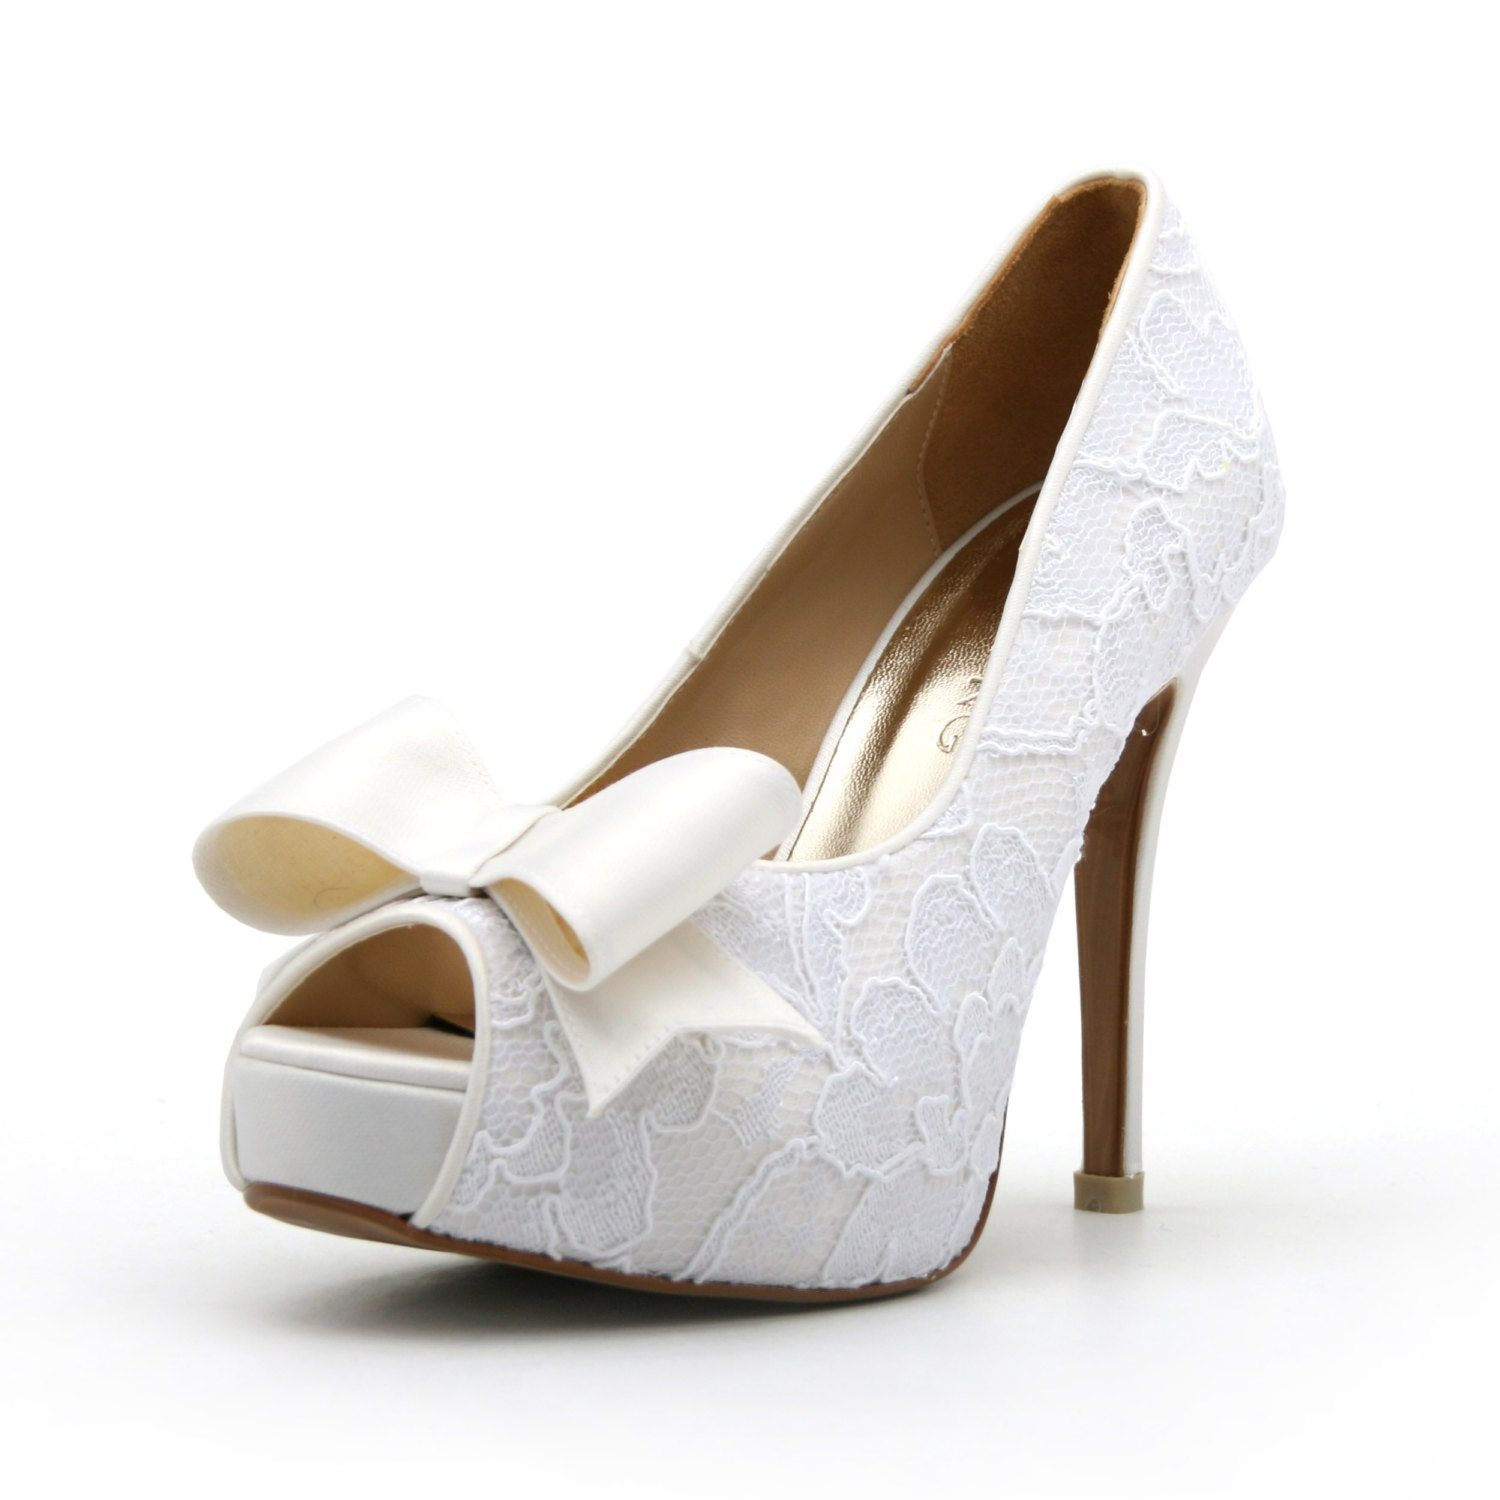 Lace White Wedding Shoe With Bow. Peep Toe Lace By